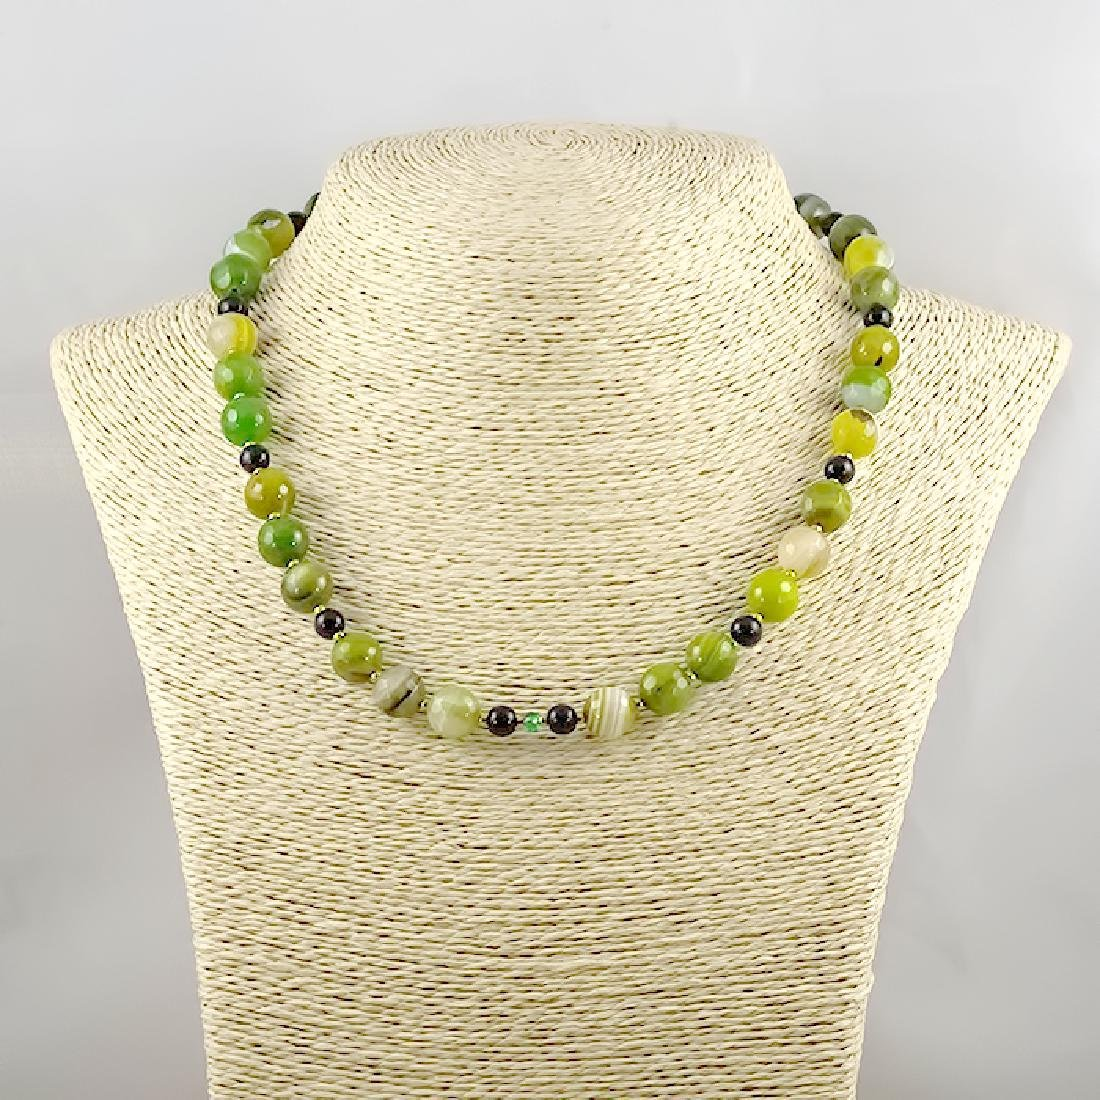 Green and Black Necklace with Emerald - 4